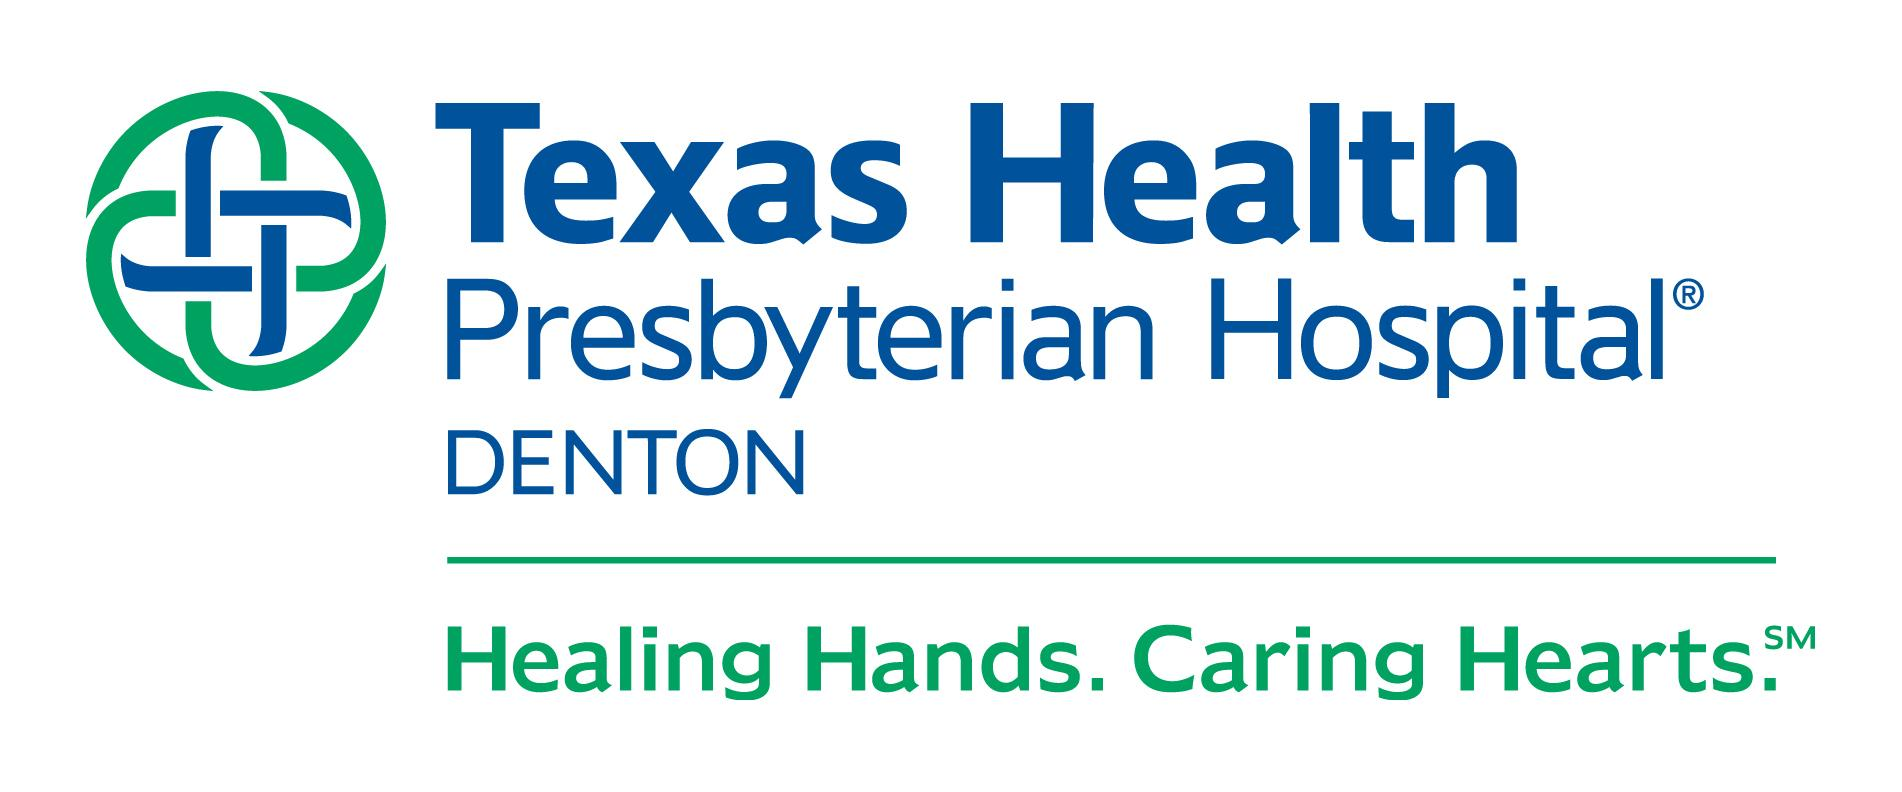 Seeking an Interventional Cardiologist to practice in Denton, Texas - Texas Health Presbyterian Hospital Denton